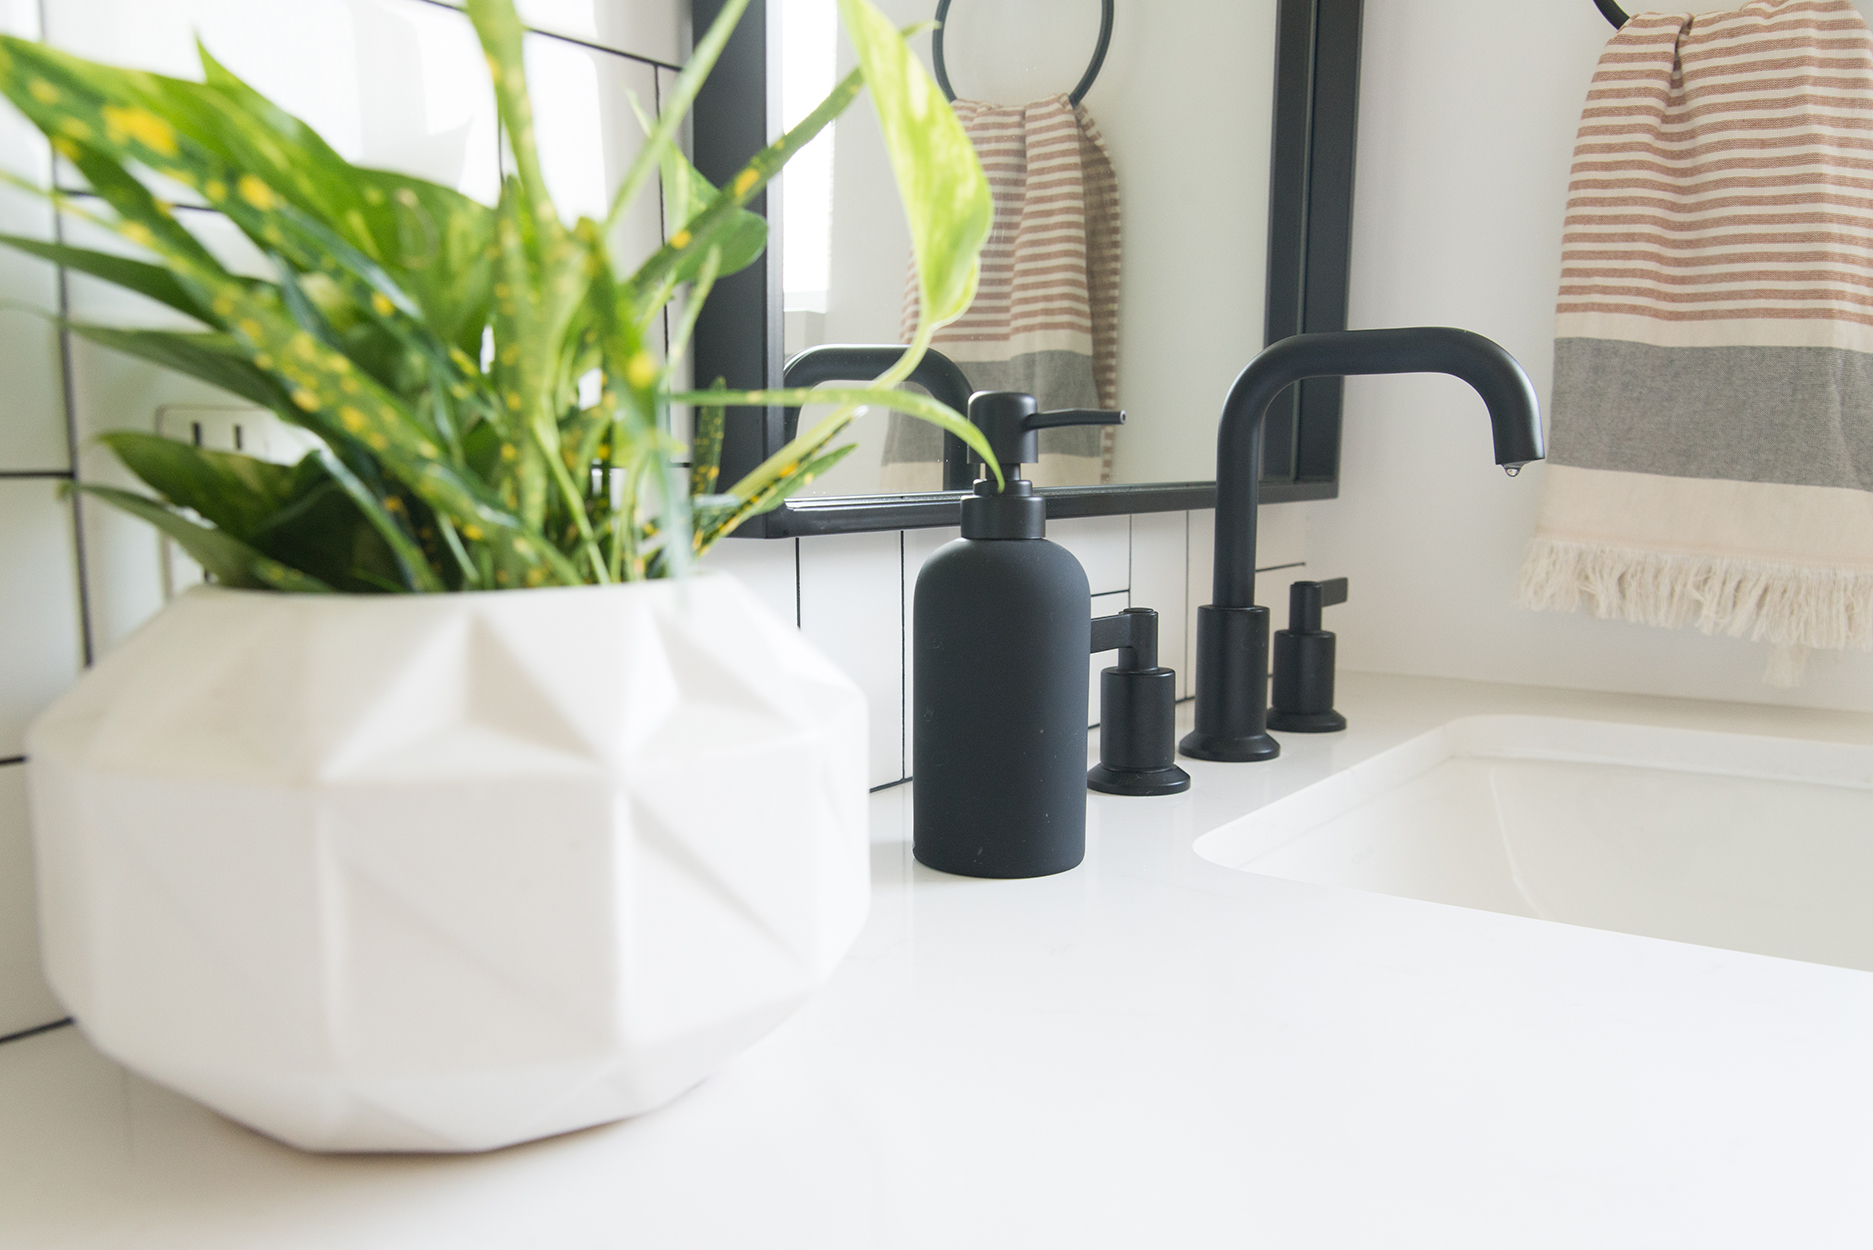 white bathroom vanity counter top with black fixtures and a white vase with a green plant